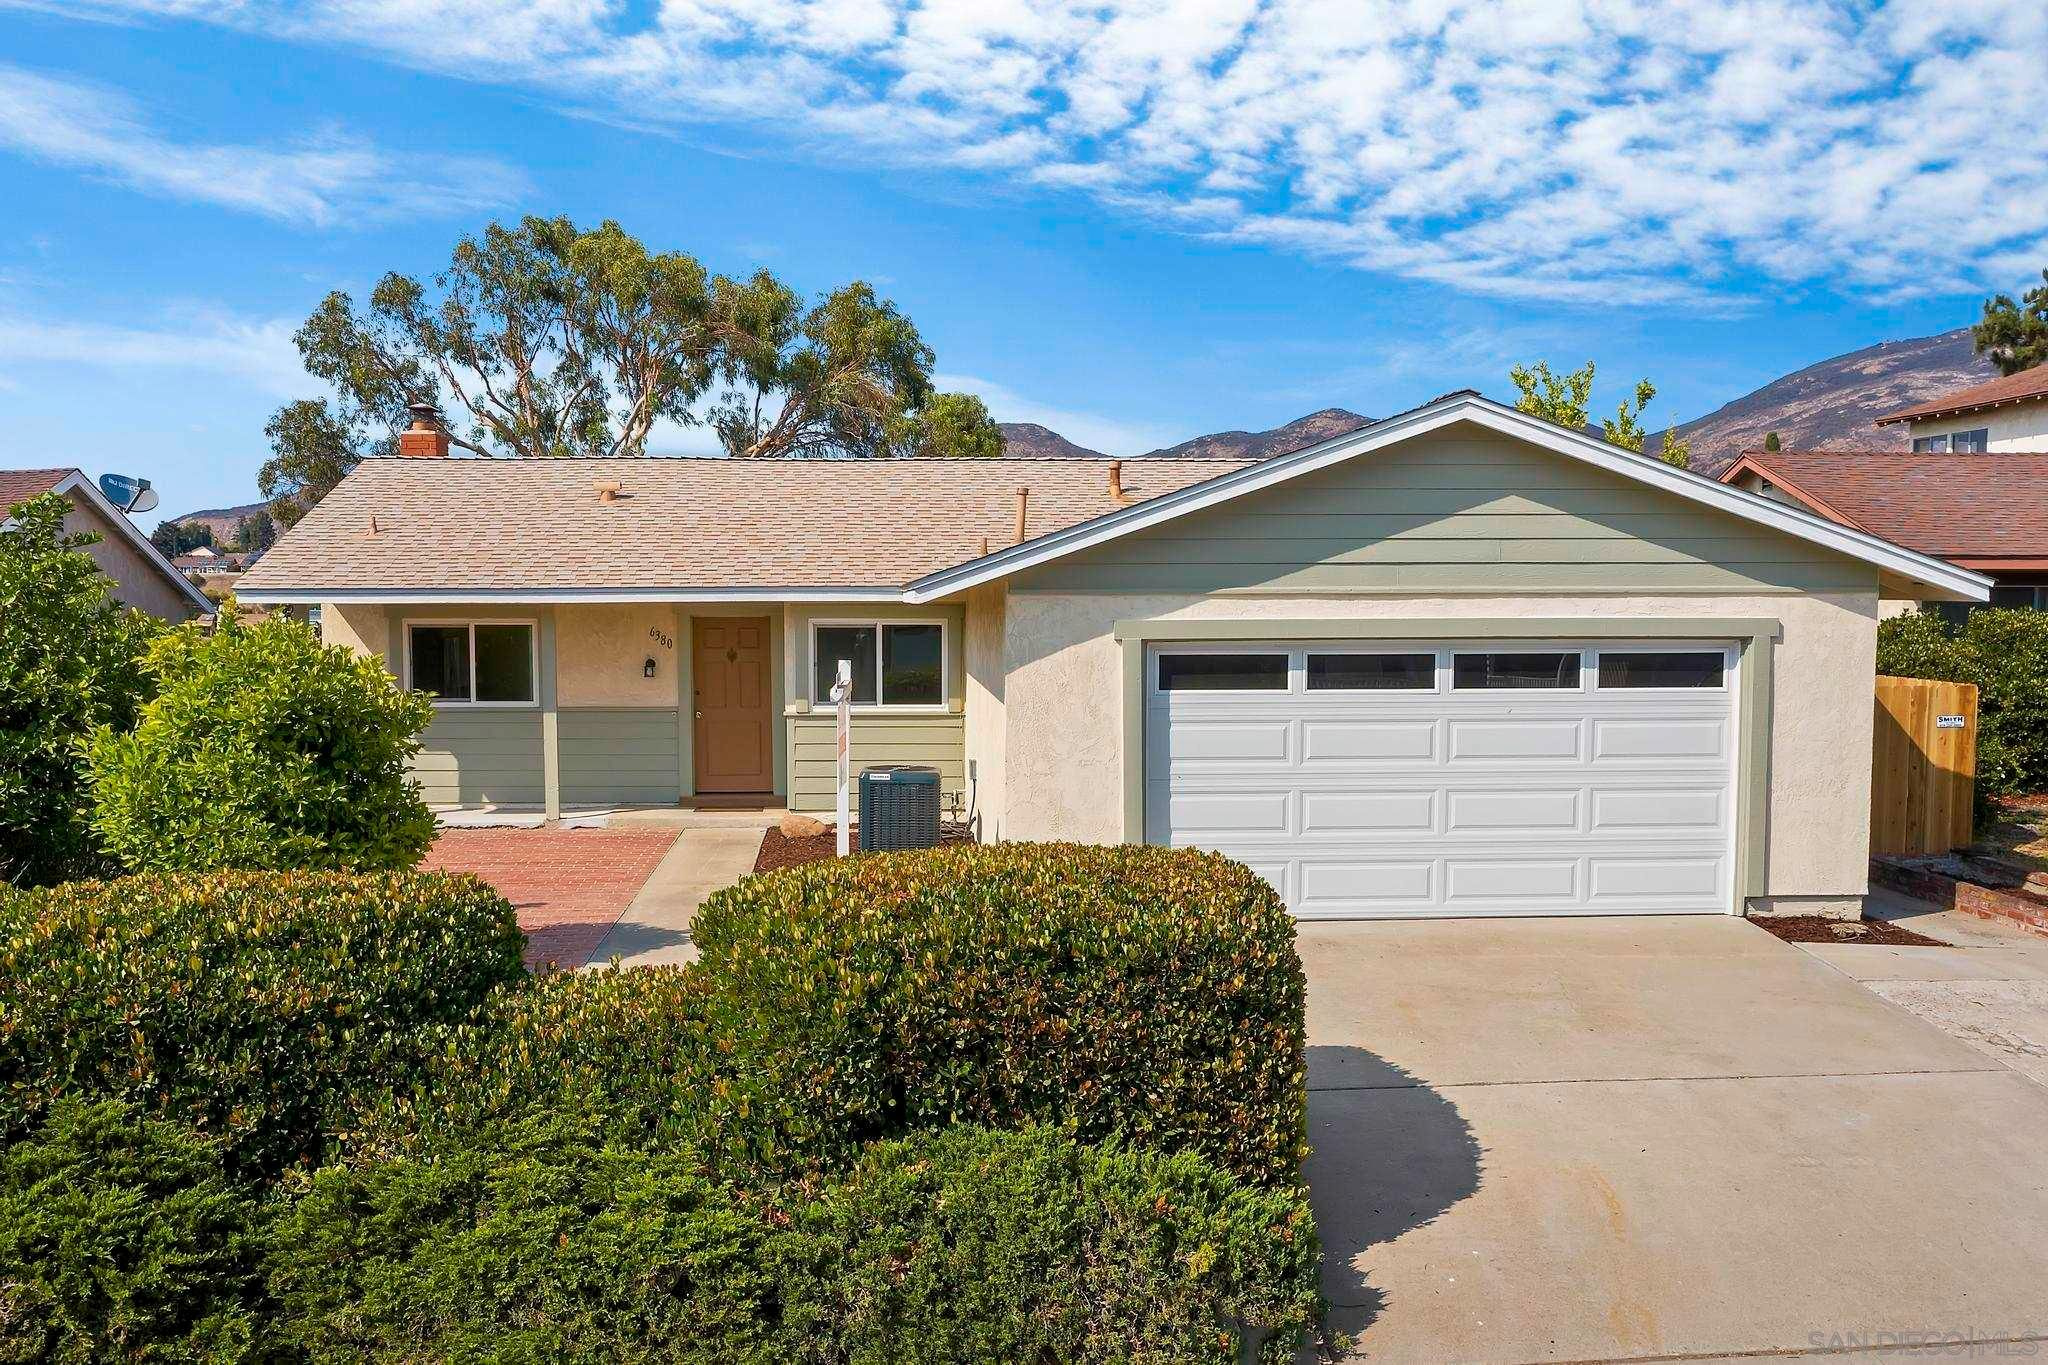 Main Photo: House for sale : 4 bedrooms : 6380 Amberly Street in San Diego